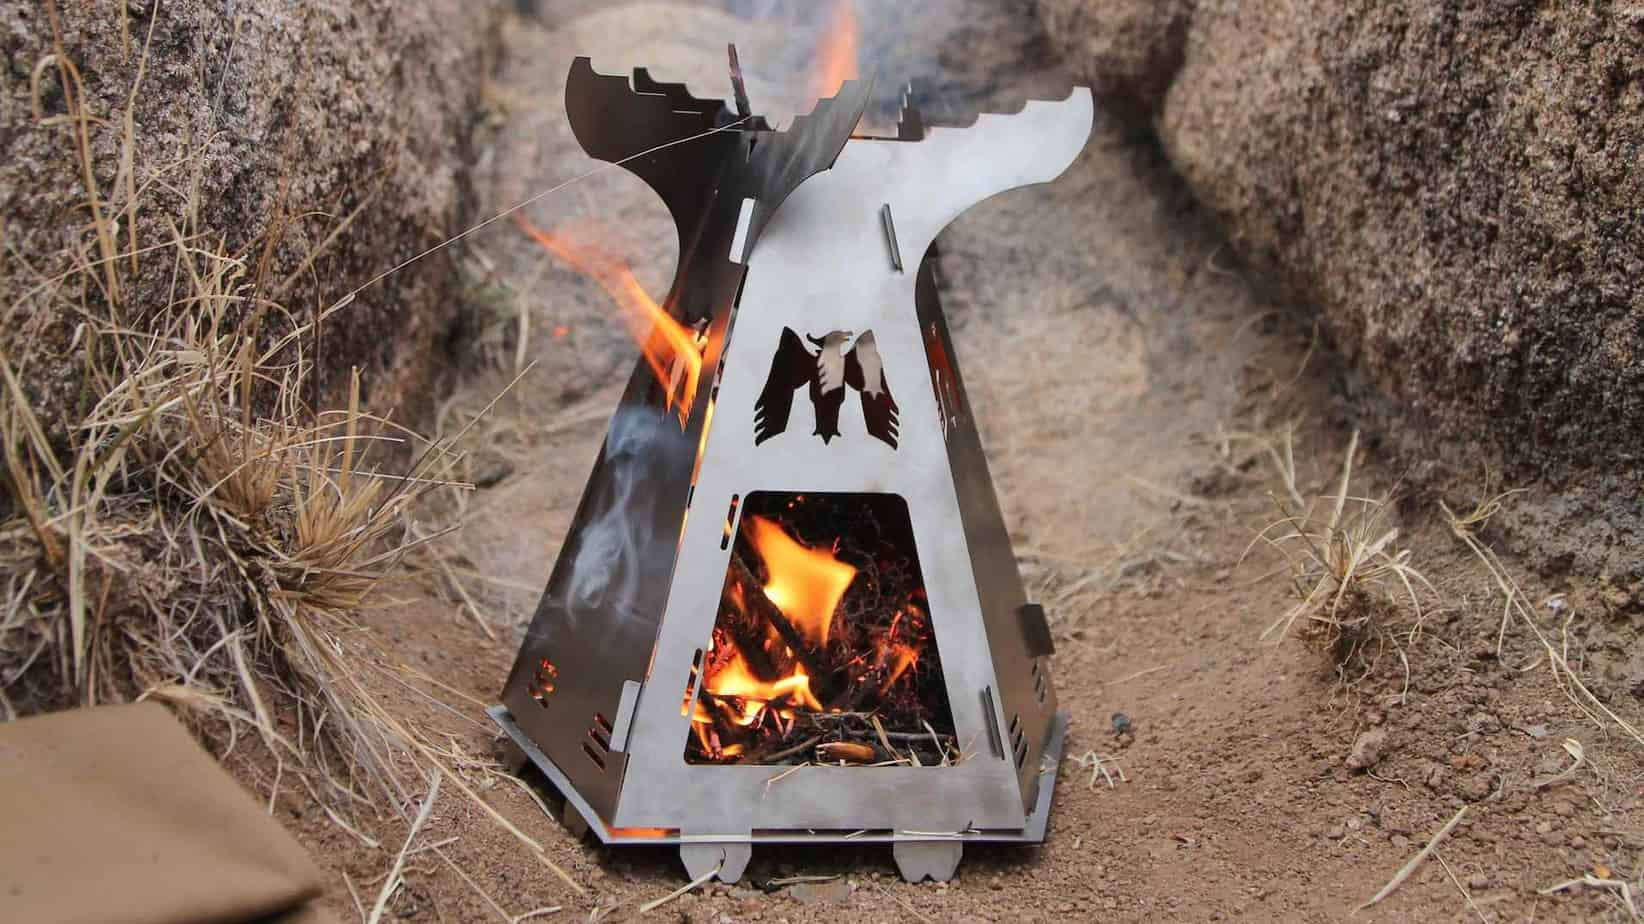 Field Tested: The Mummert Knives Phoenix Stove